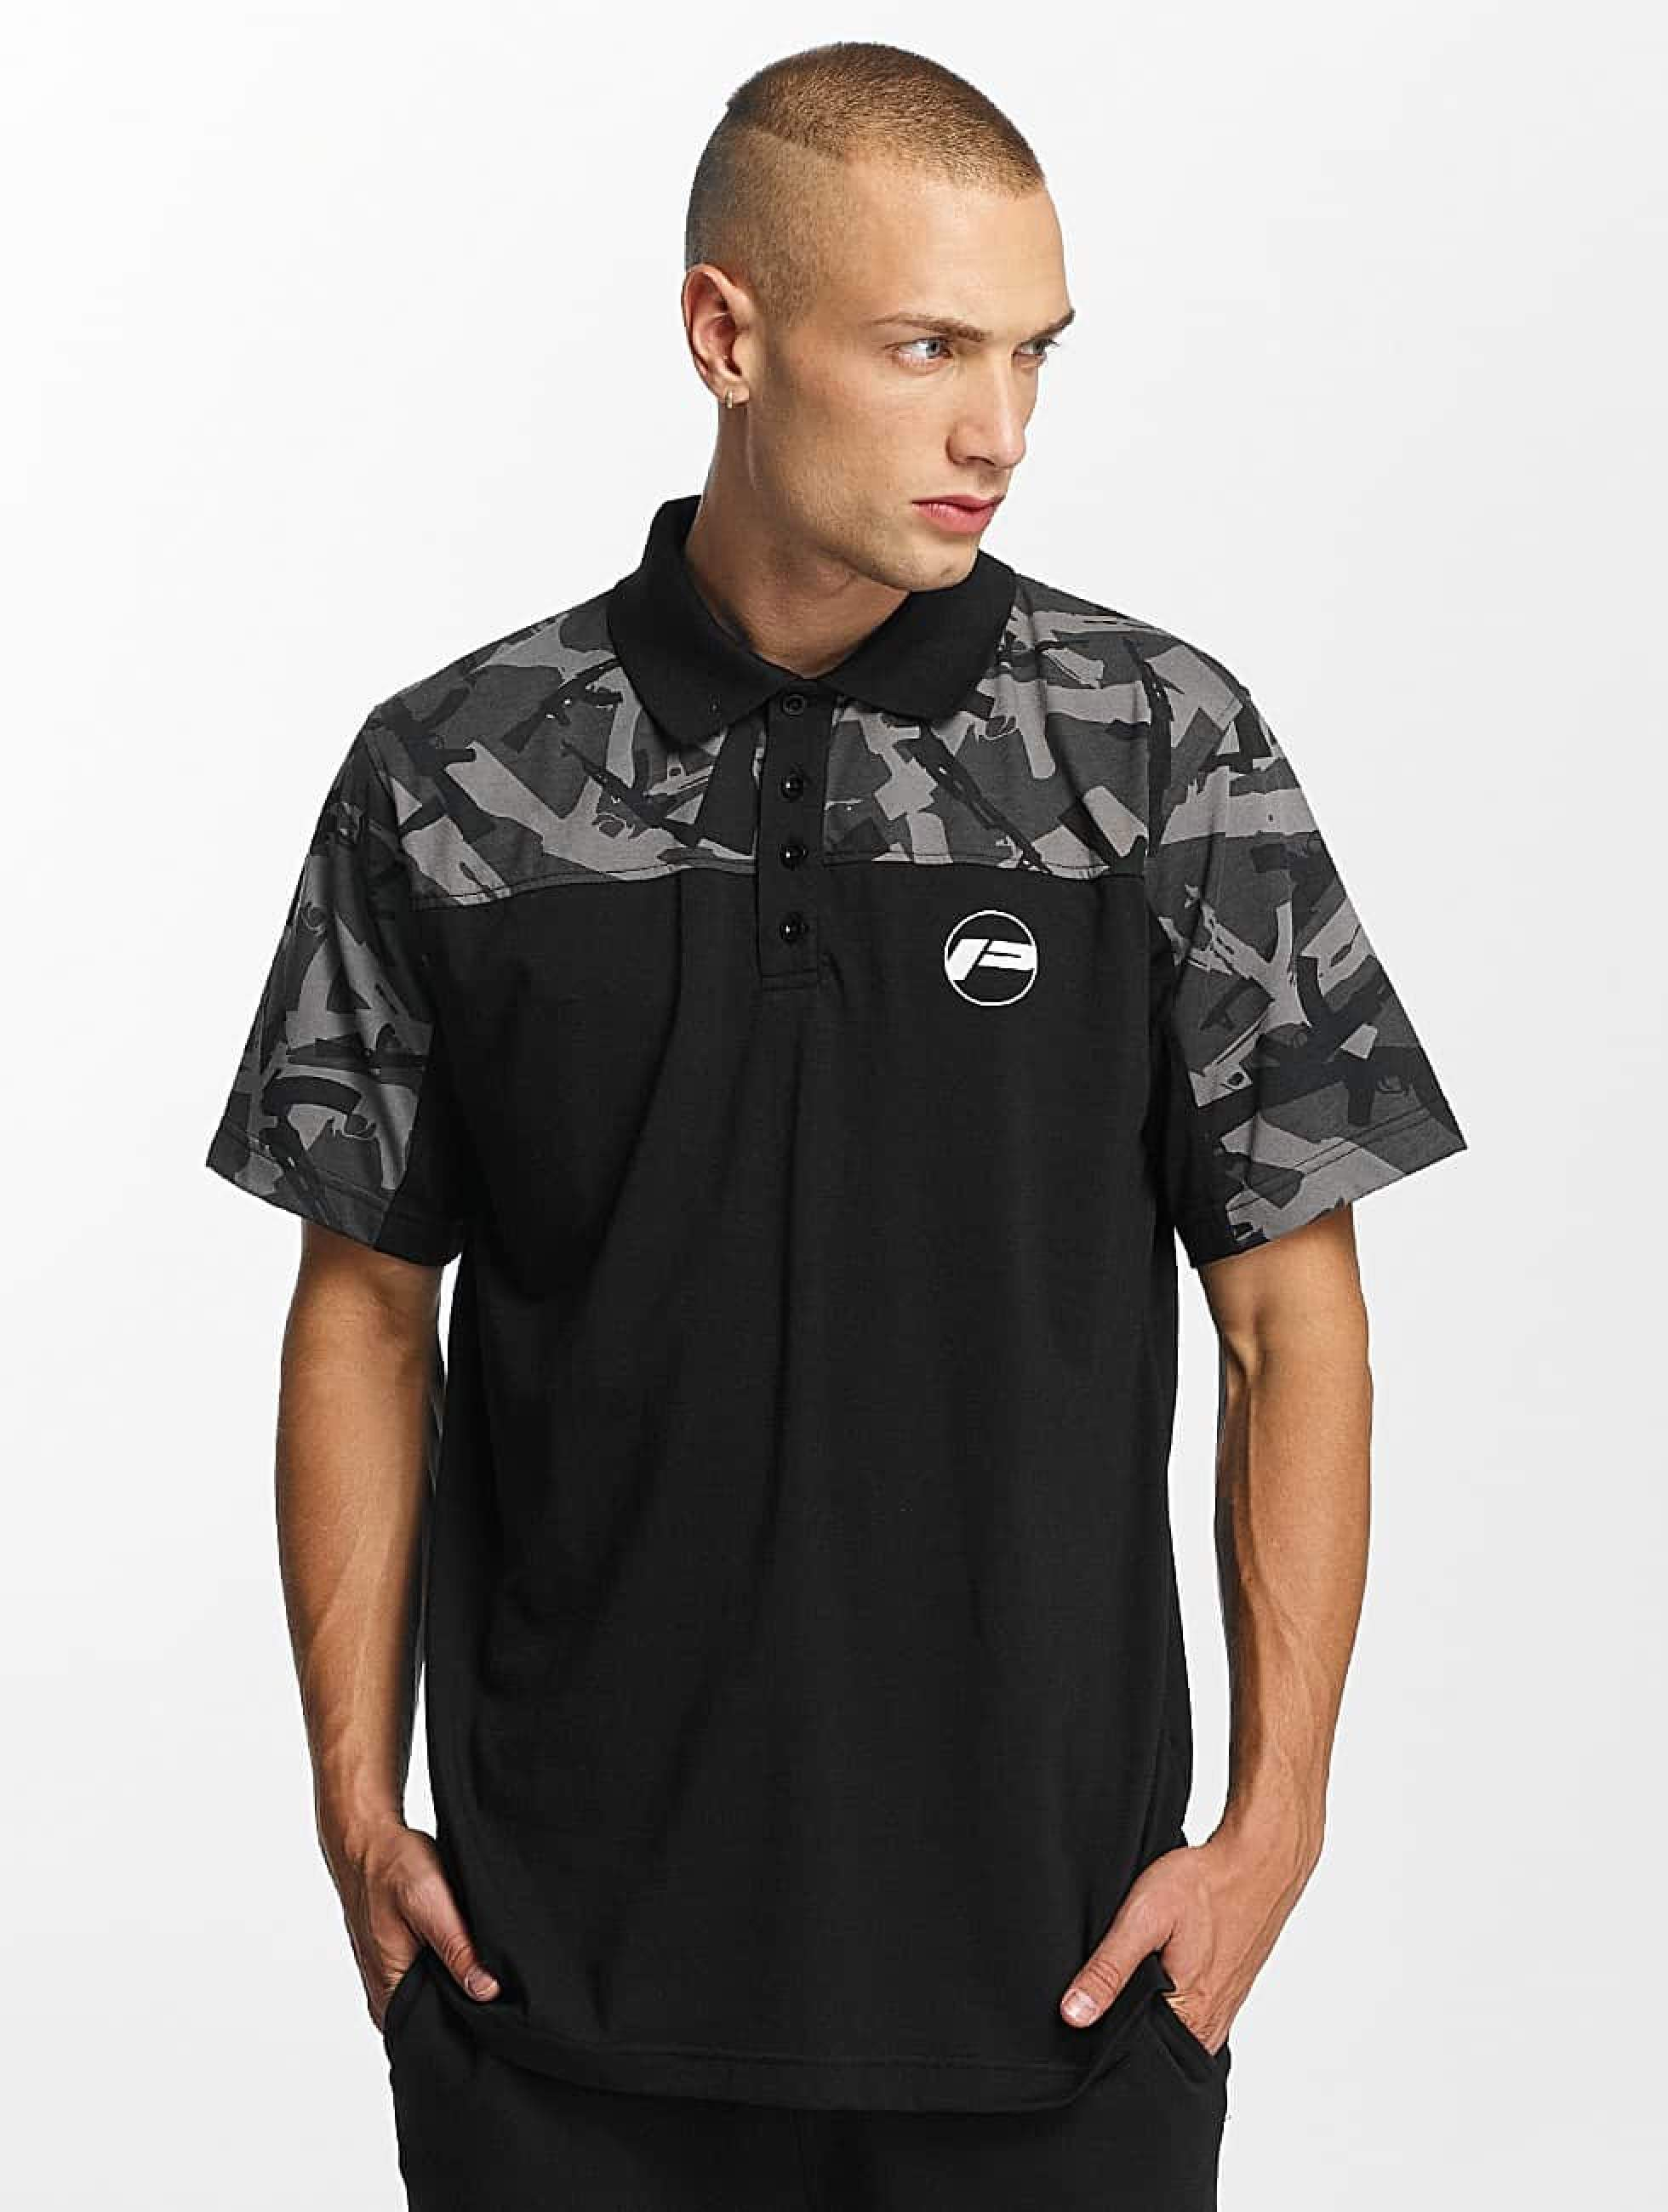 Pusher Apparel | AK Camo camouflage Homme Polo